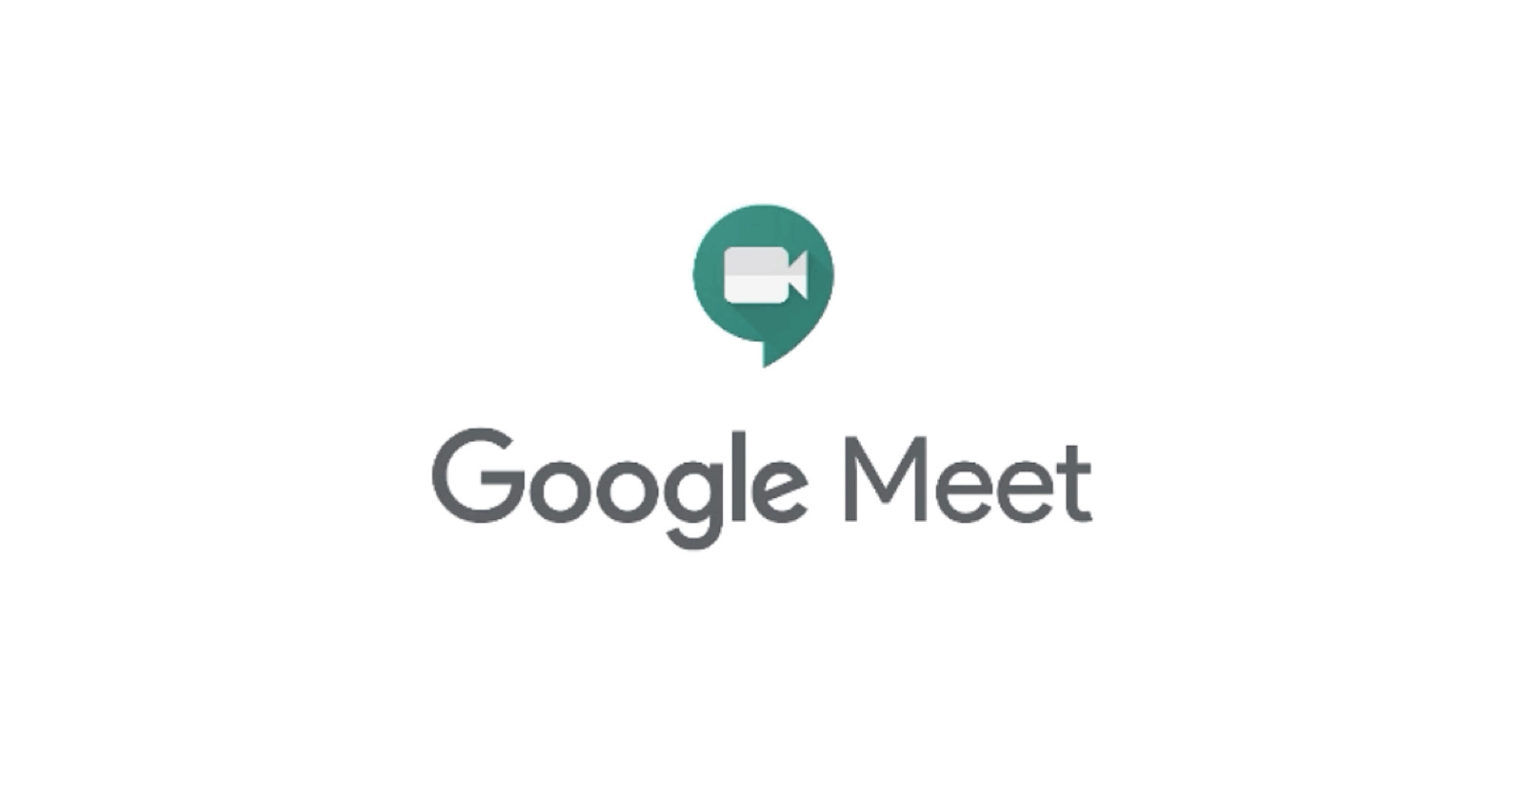 Google Meet Is Now Free For All Users